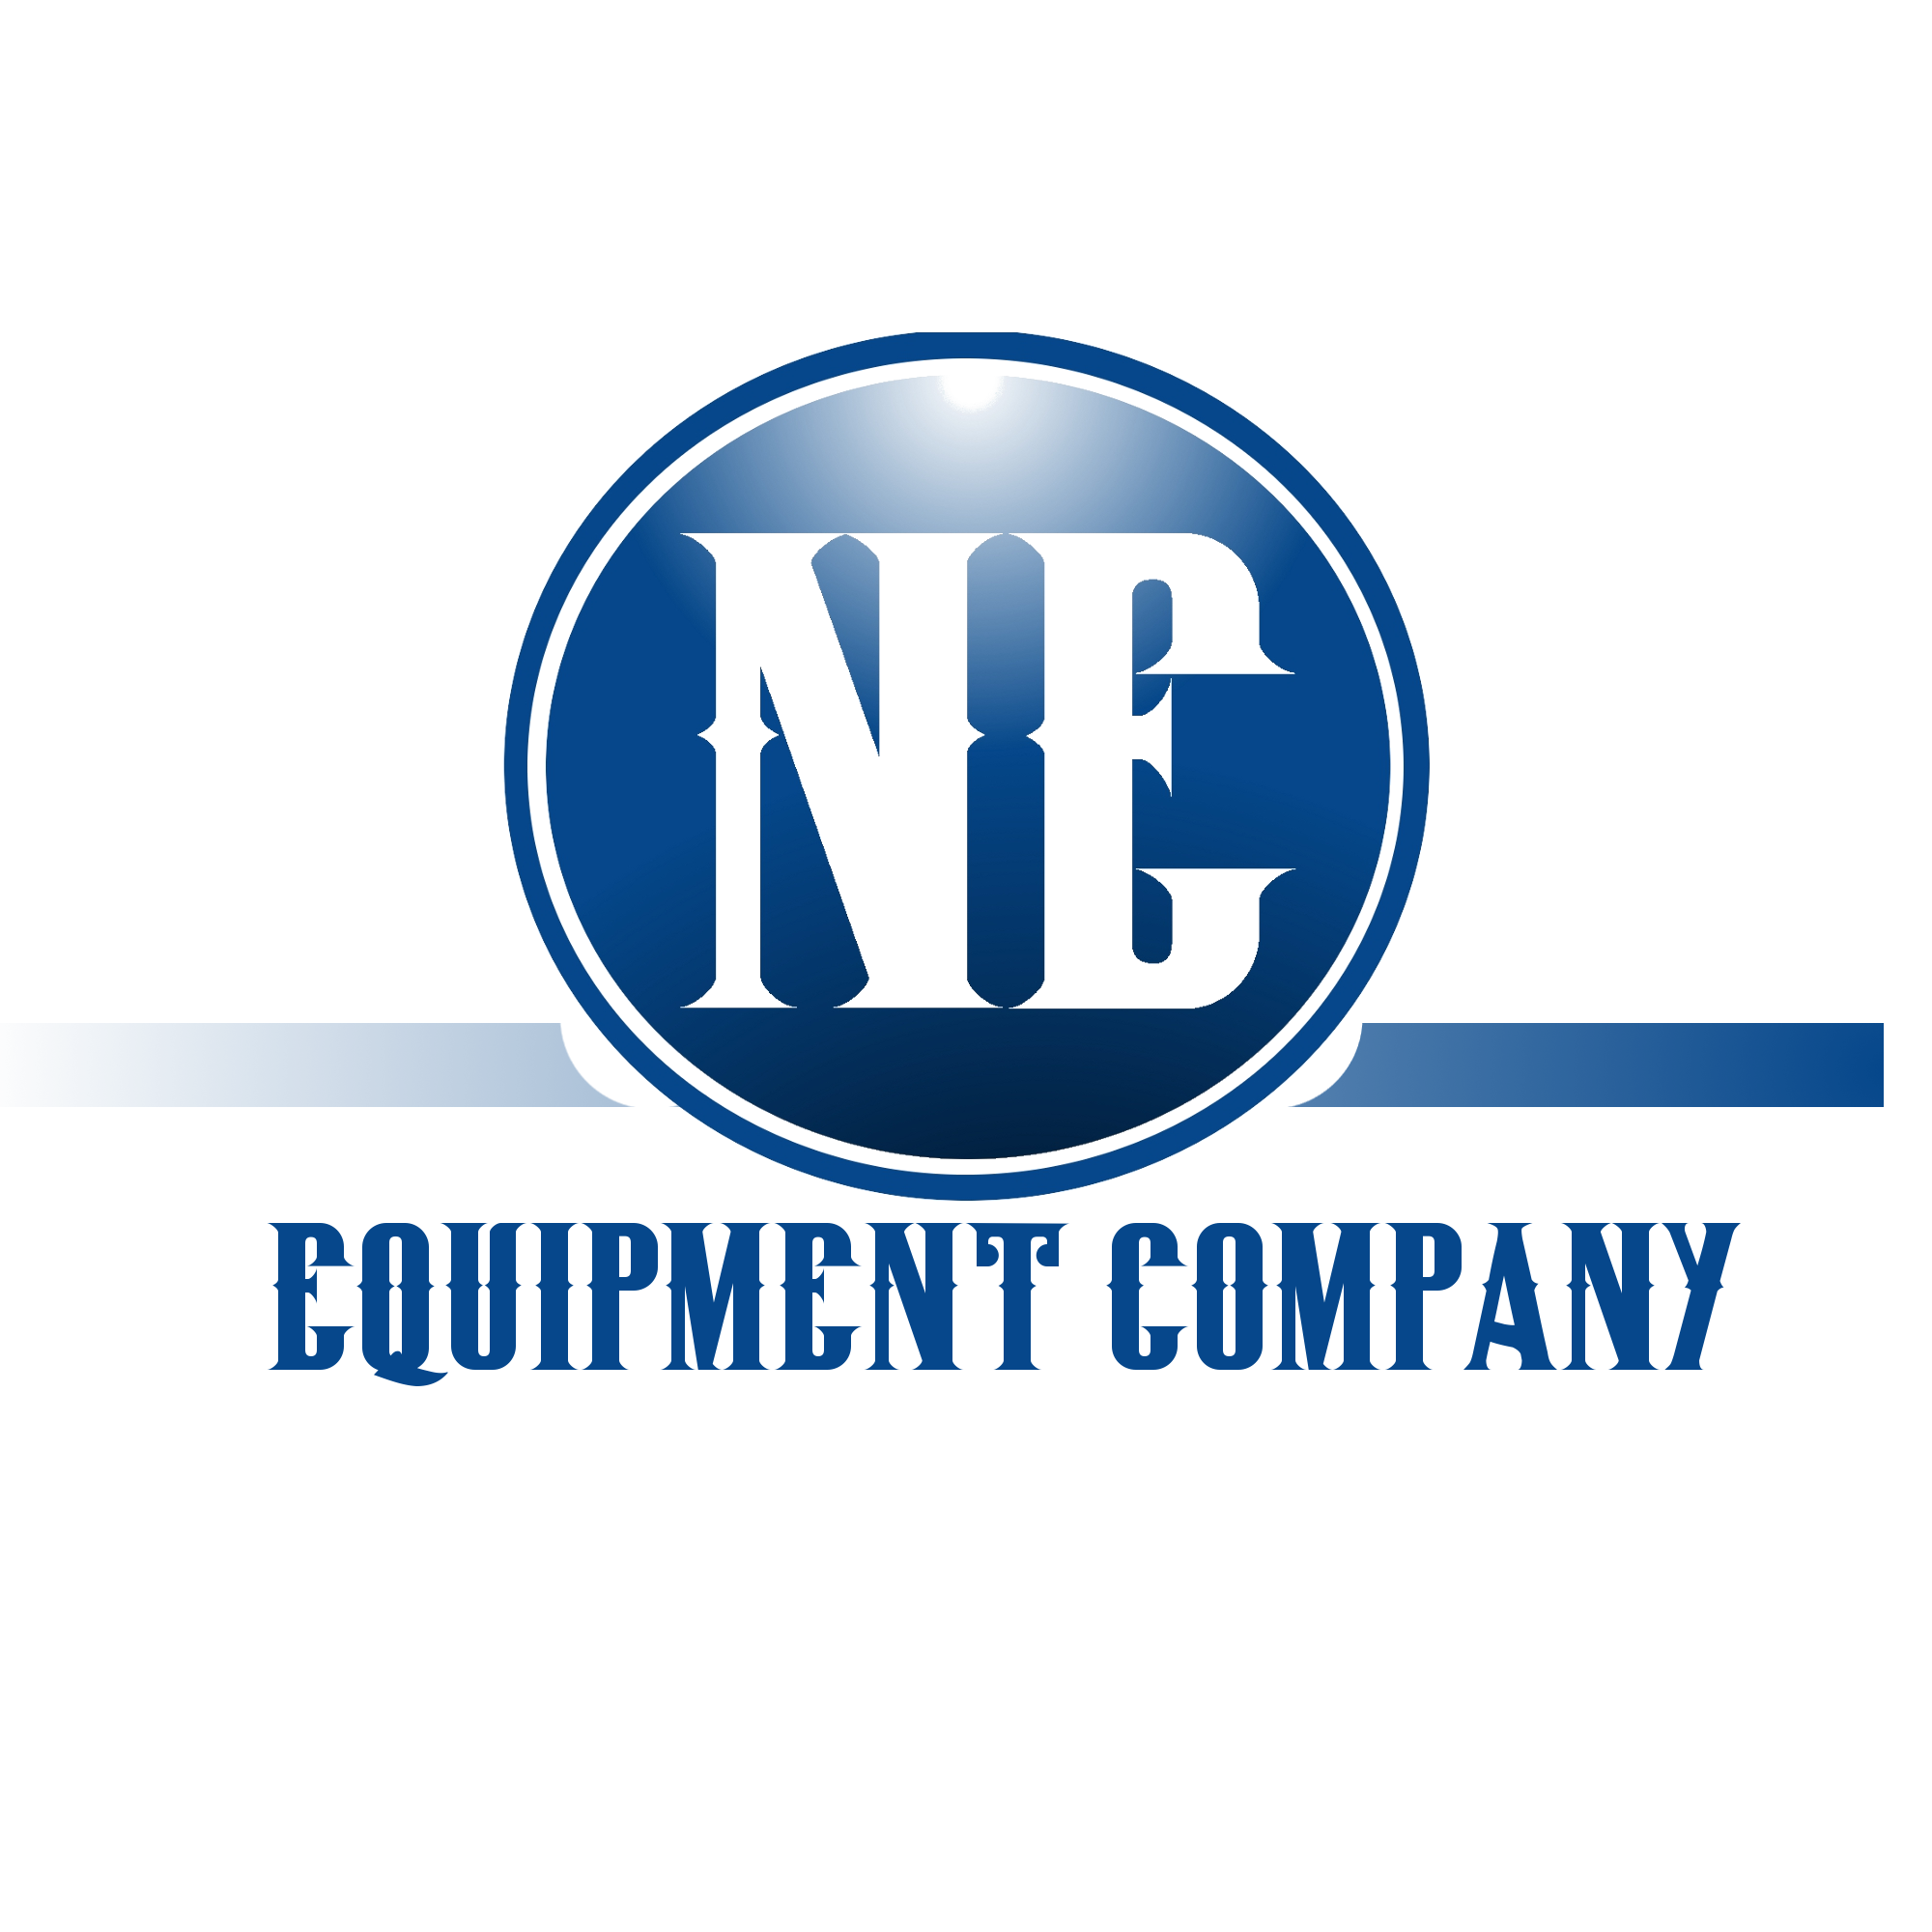 Logo Design by dallywopper - Entry No. 162 in the Logo Design Contest Imaginative Logo Design for The Near East Equipment Co..